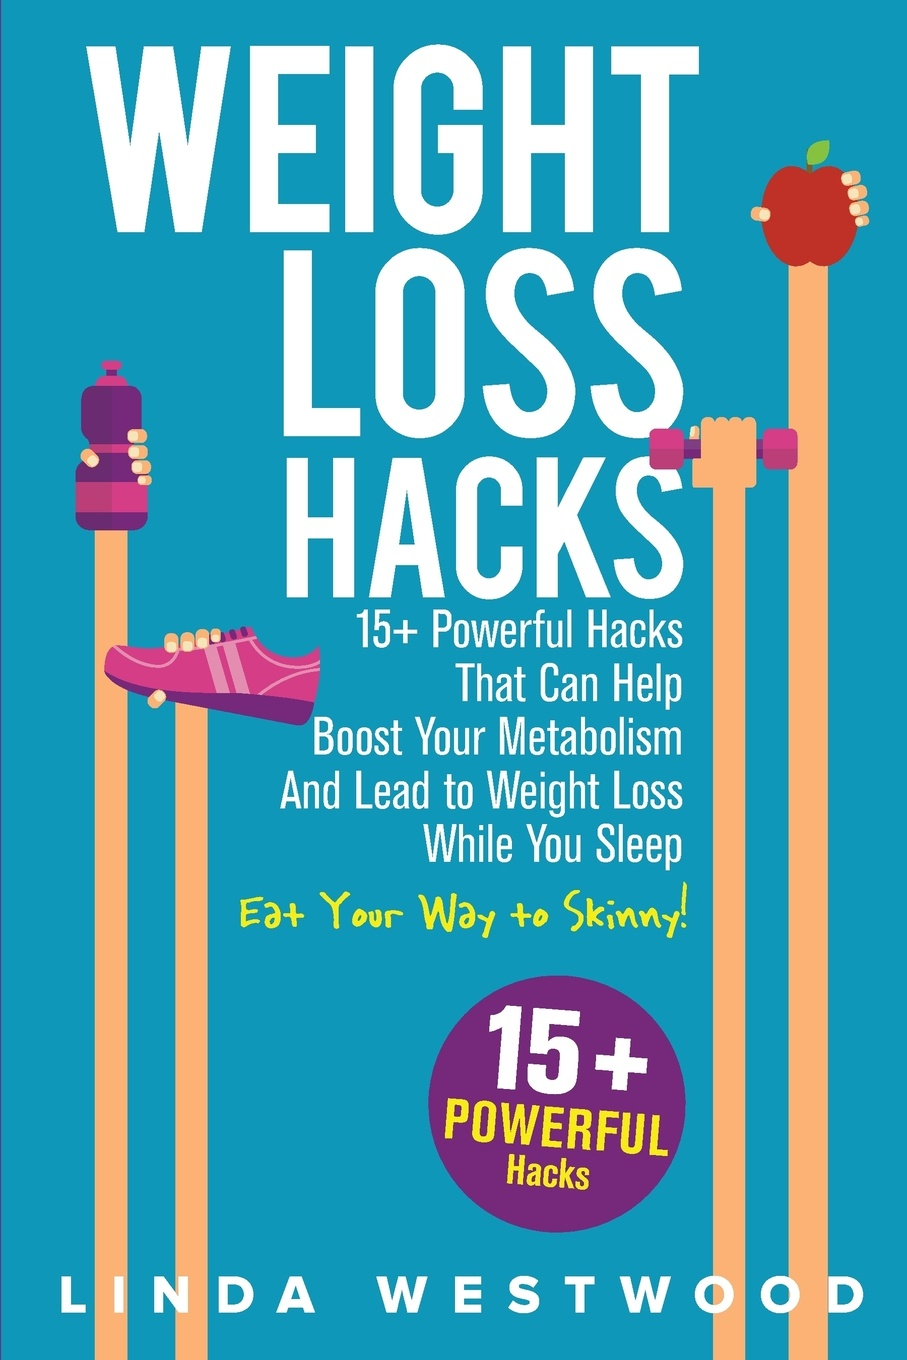 Linda Westwood Weight Loss Hacks. 15+ Powerful Hacks That Can Help Boost Your Metabolism And Lead to While You Sleep (Eat Way Skinny)